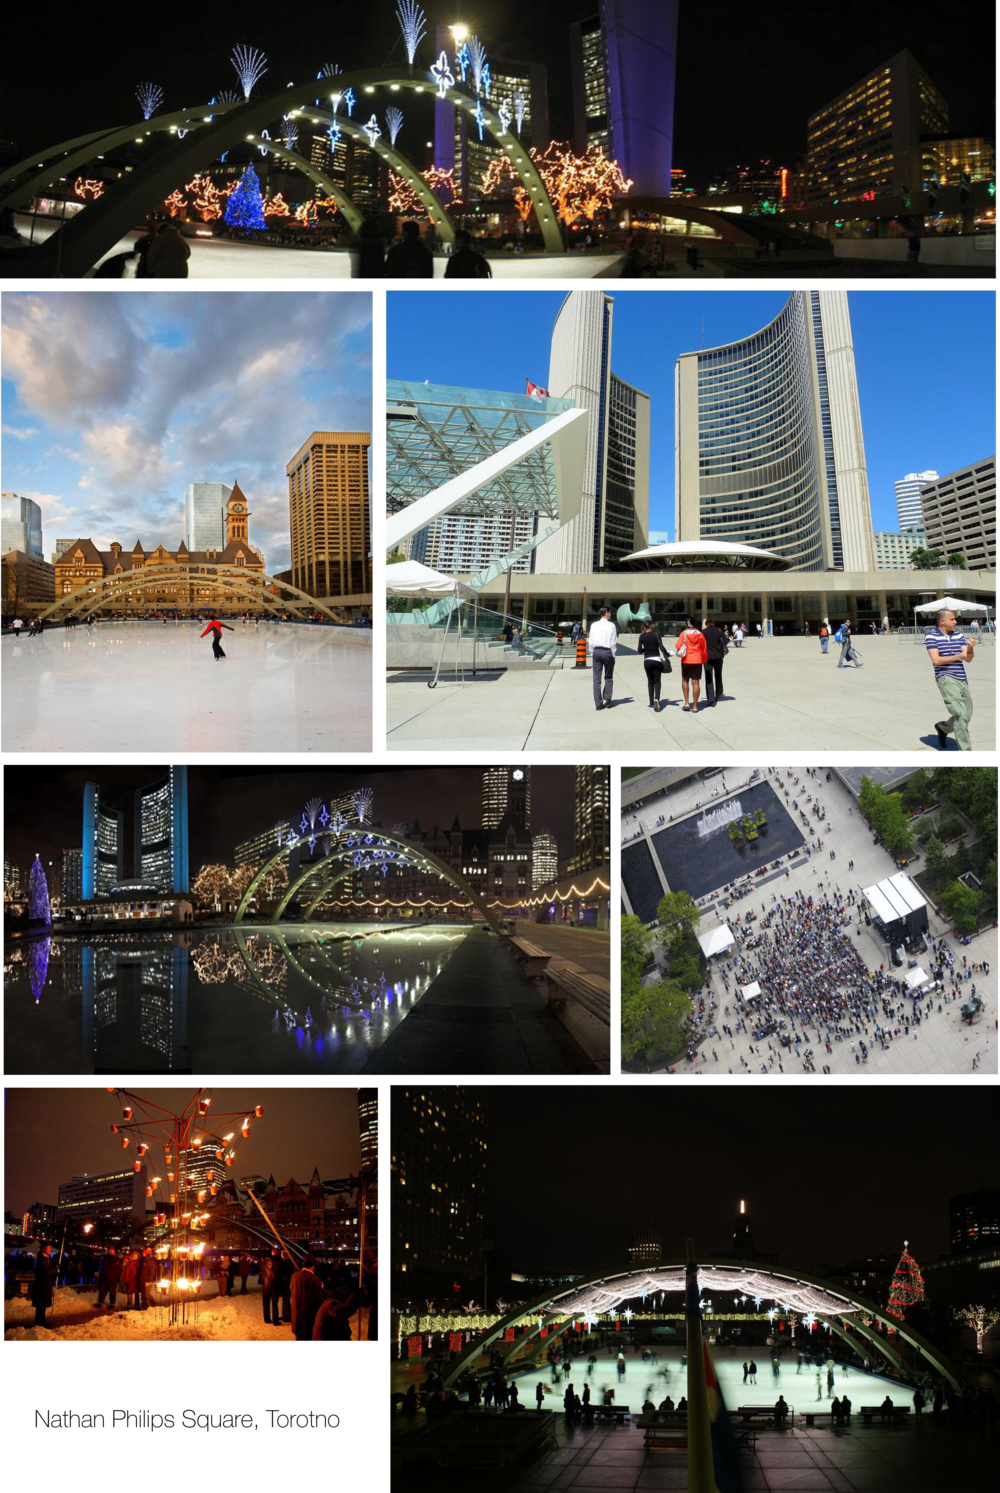 Nathan Philips Square videographer & photographer shoot location.